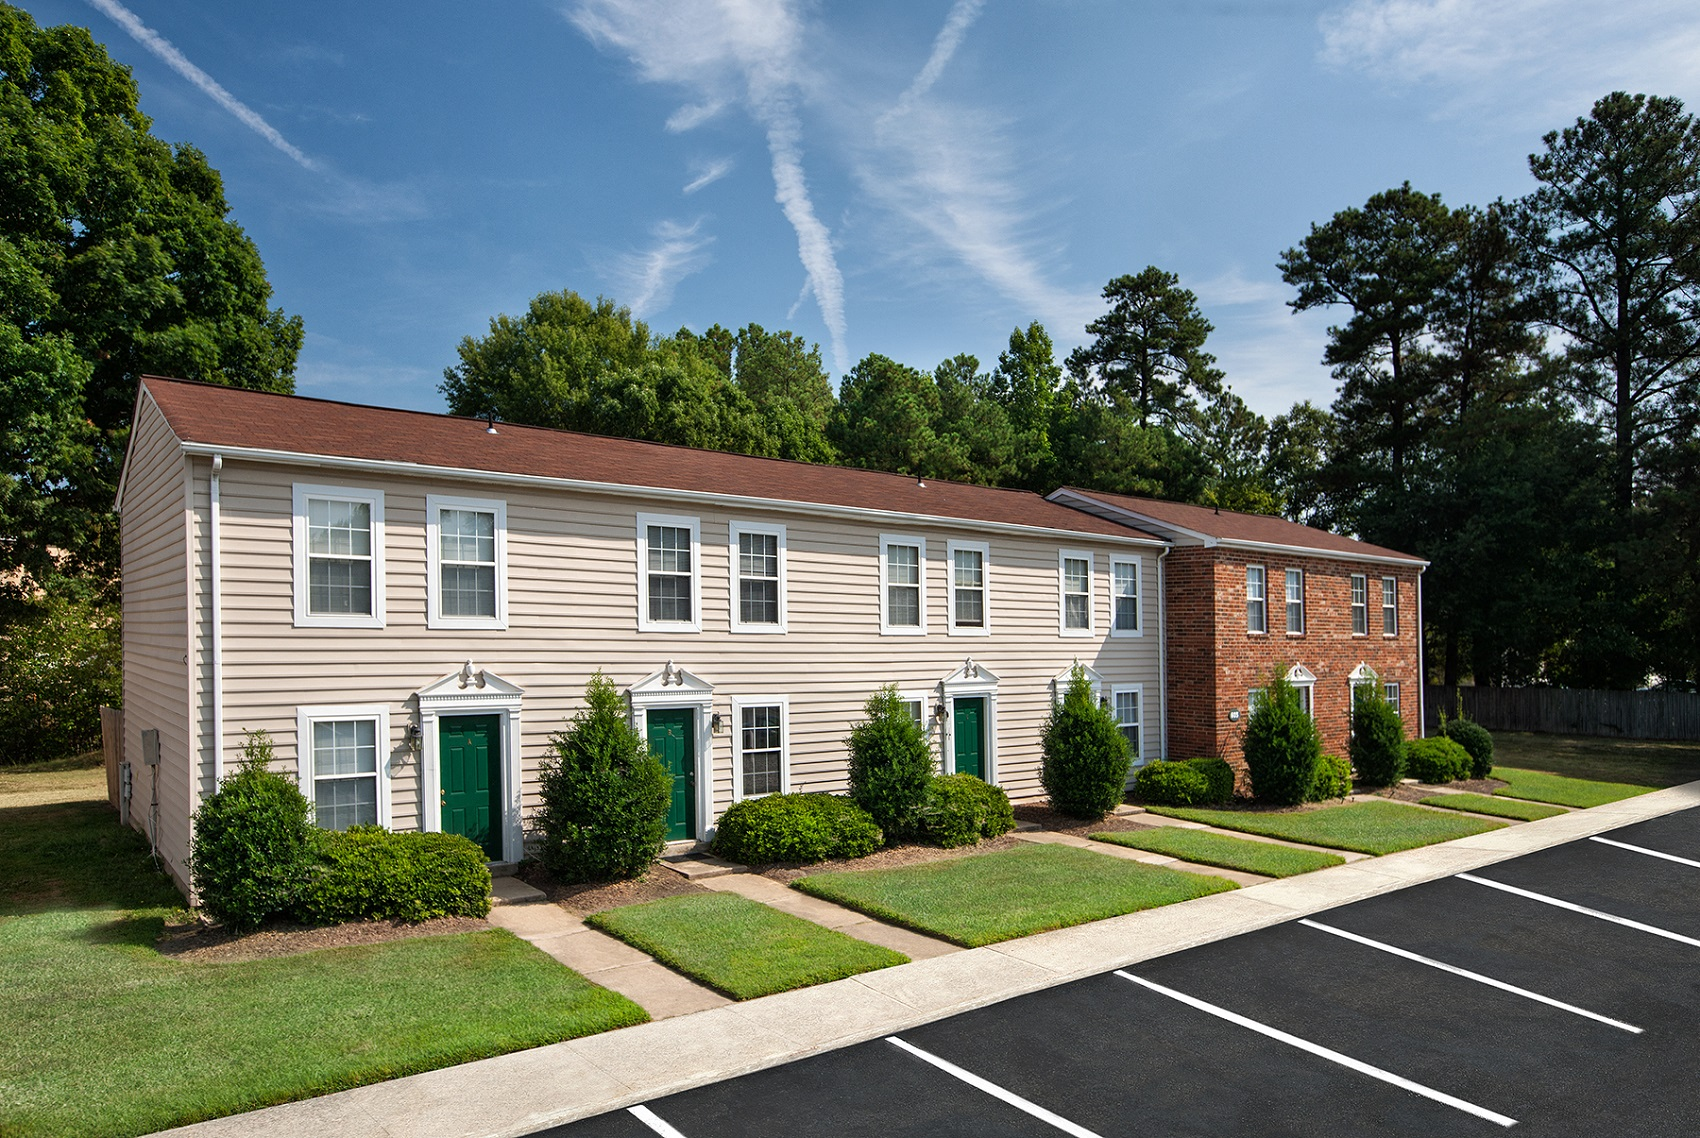 2 Bedroom Apartments For Rent In Richmond VA